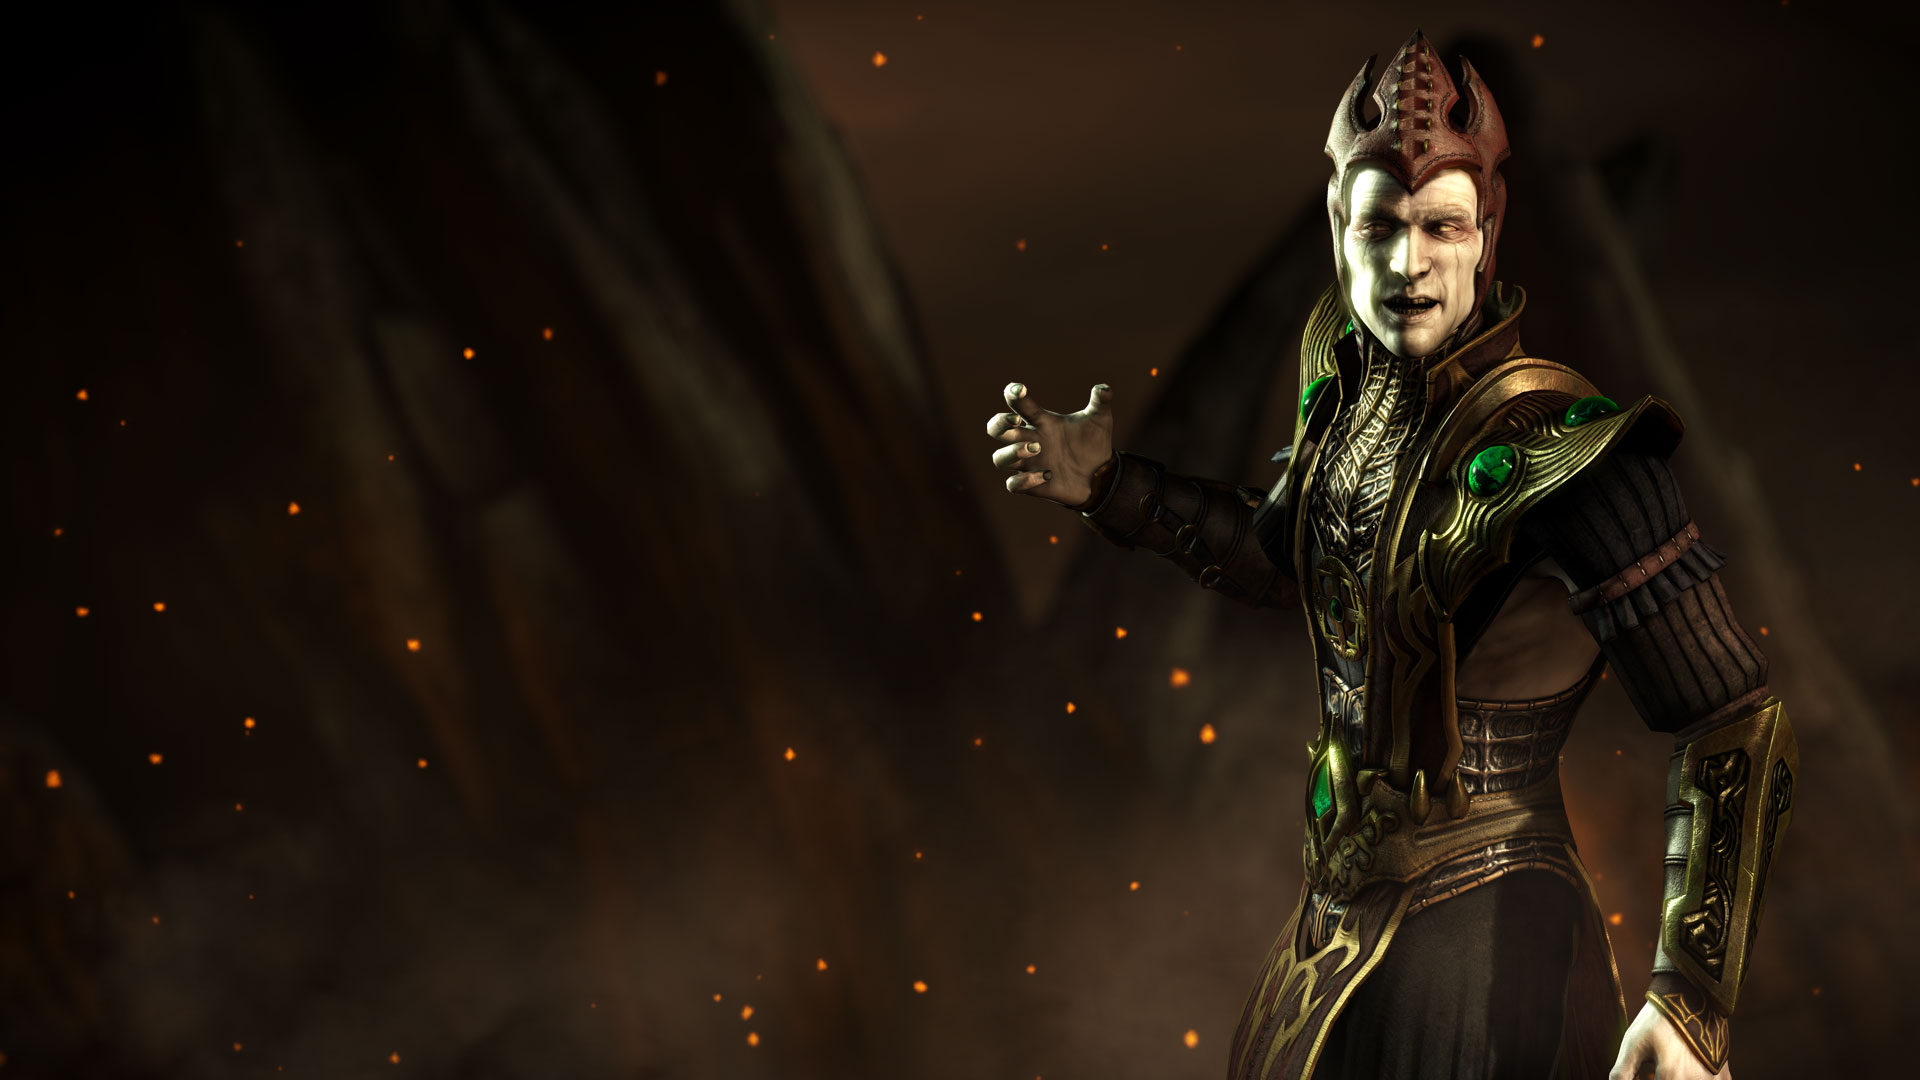 Hd Photos For Mobile Wallpaper Mkwarehouse Mortal Kombat X Shinnok